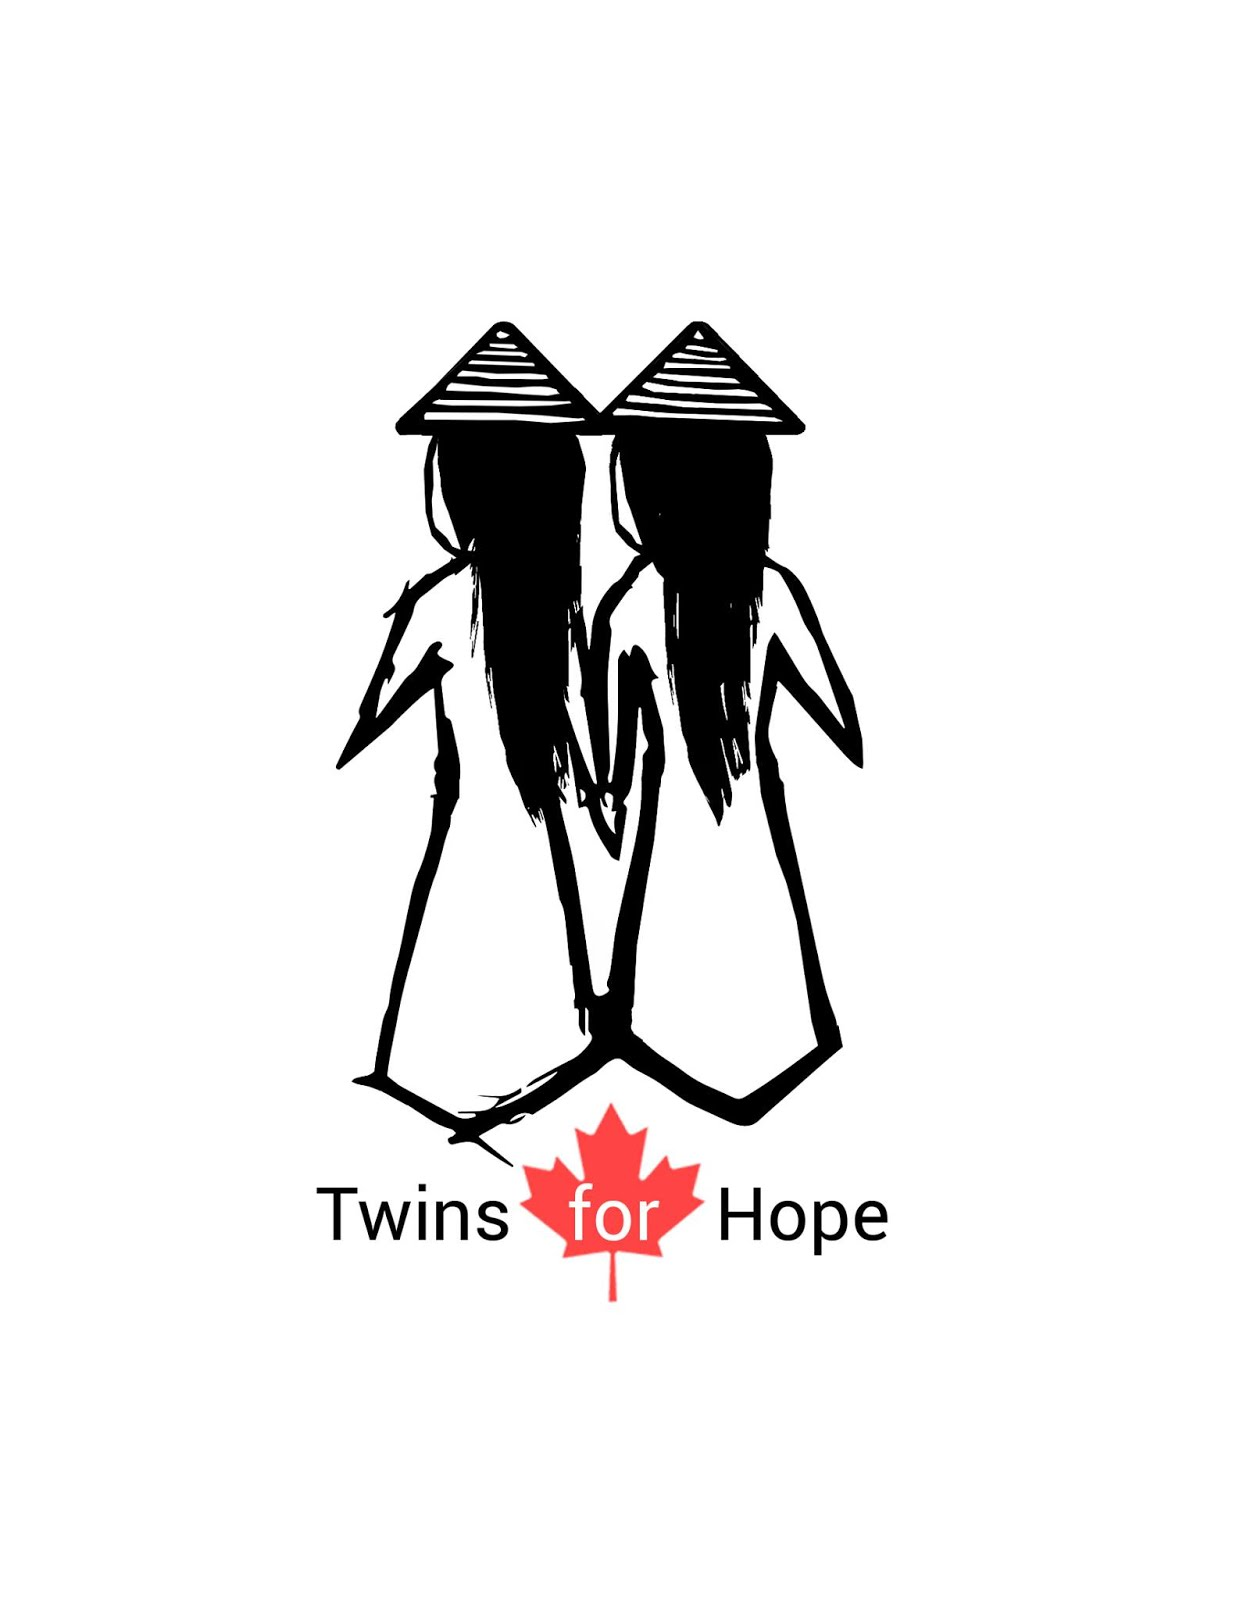 Twins for Hope